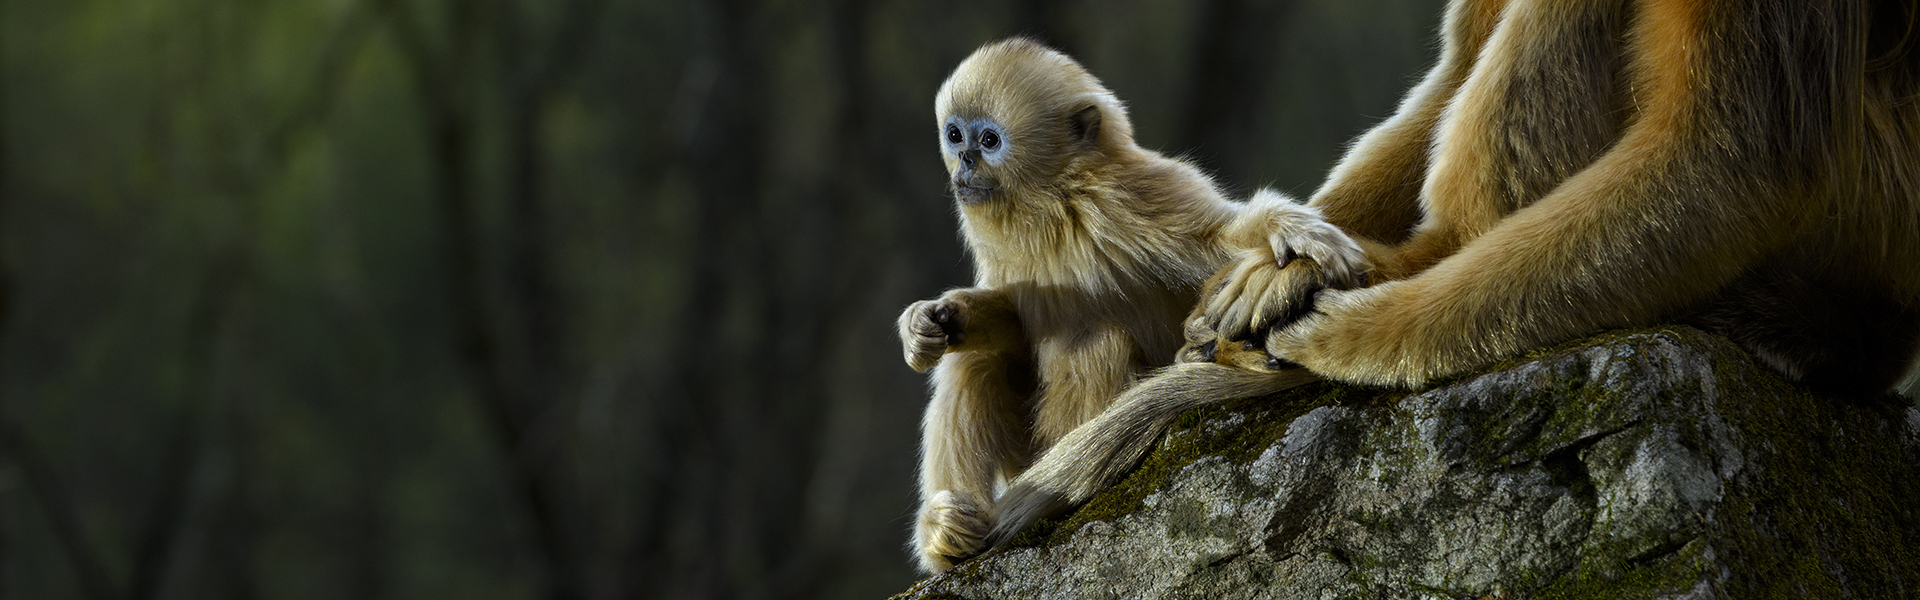 baby-snub-nosed-monkey-hero